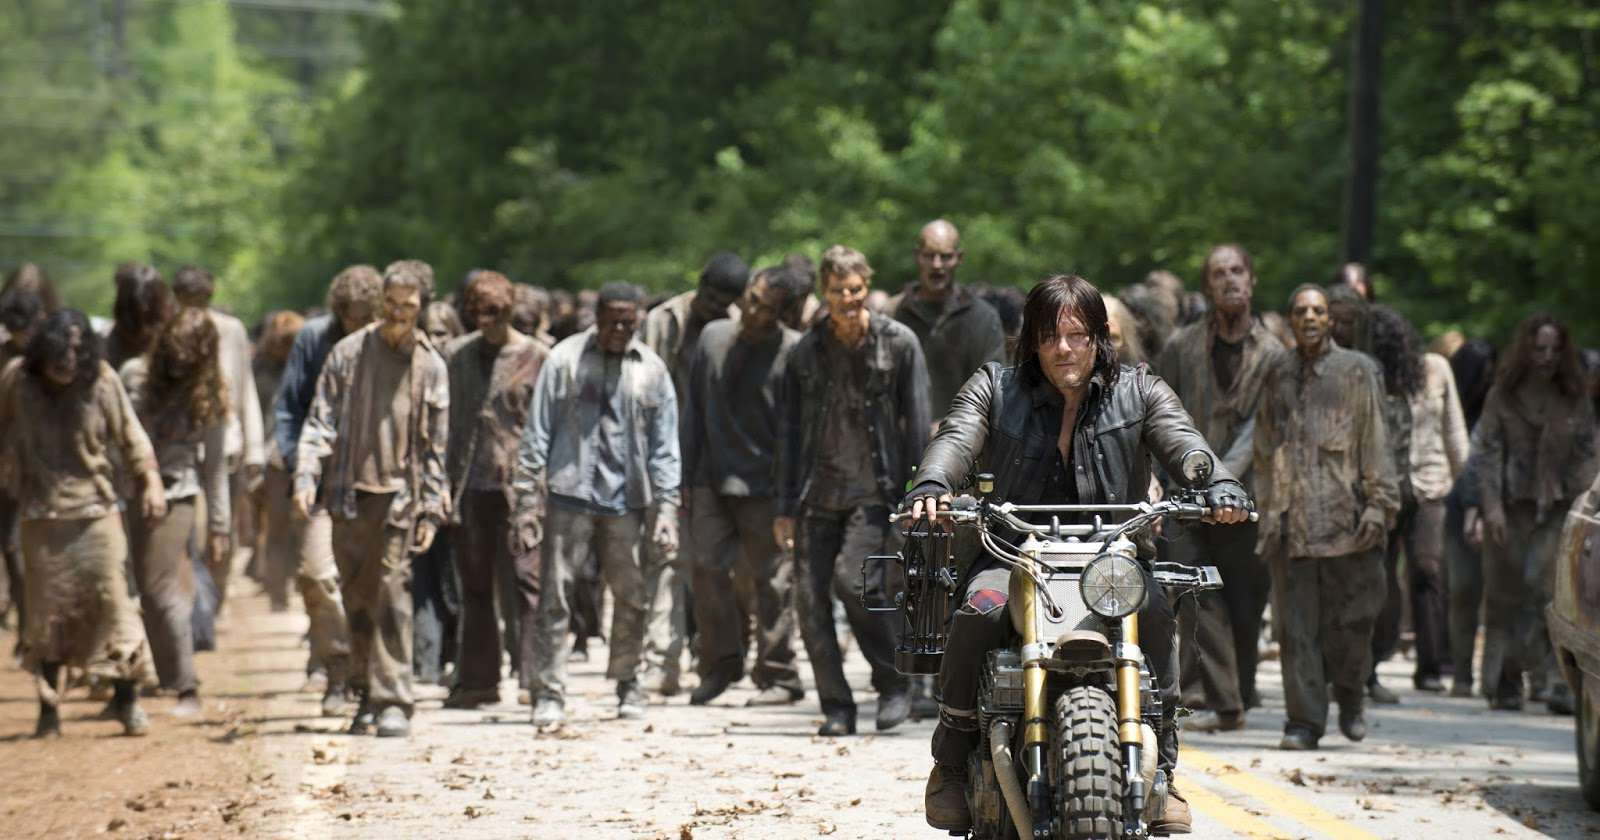 walking-dead-norman-reedus-daryl-motorcycle-photo